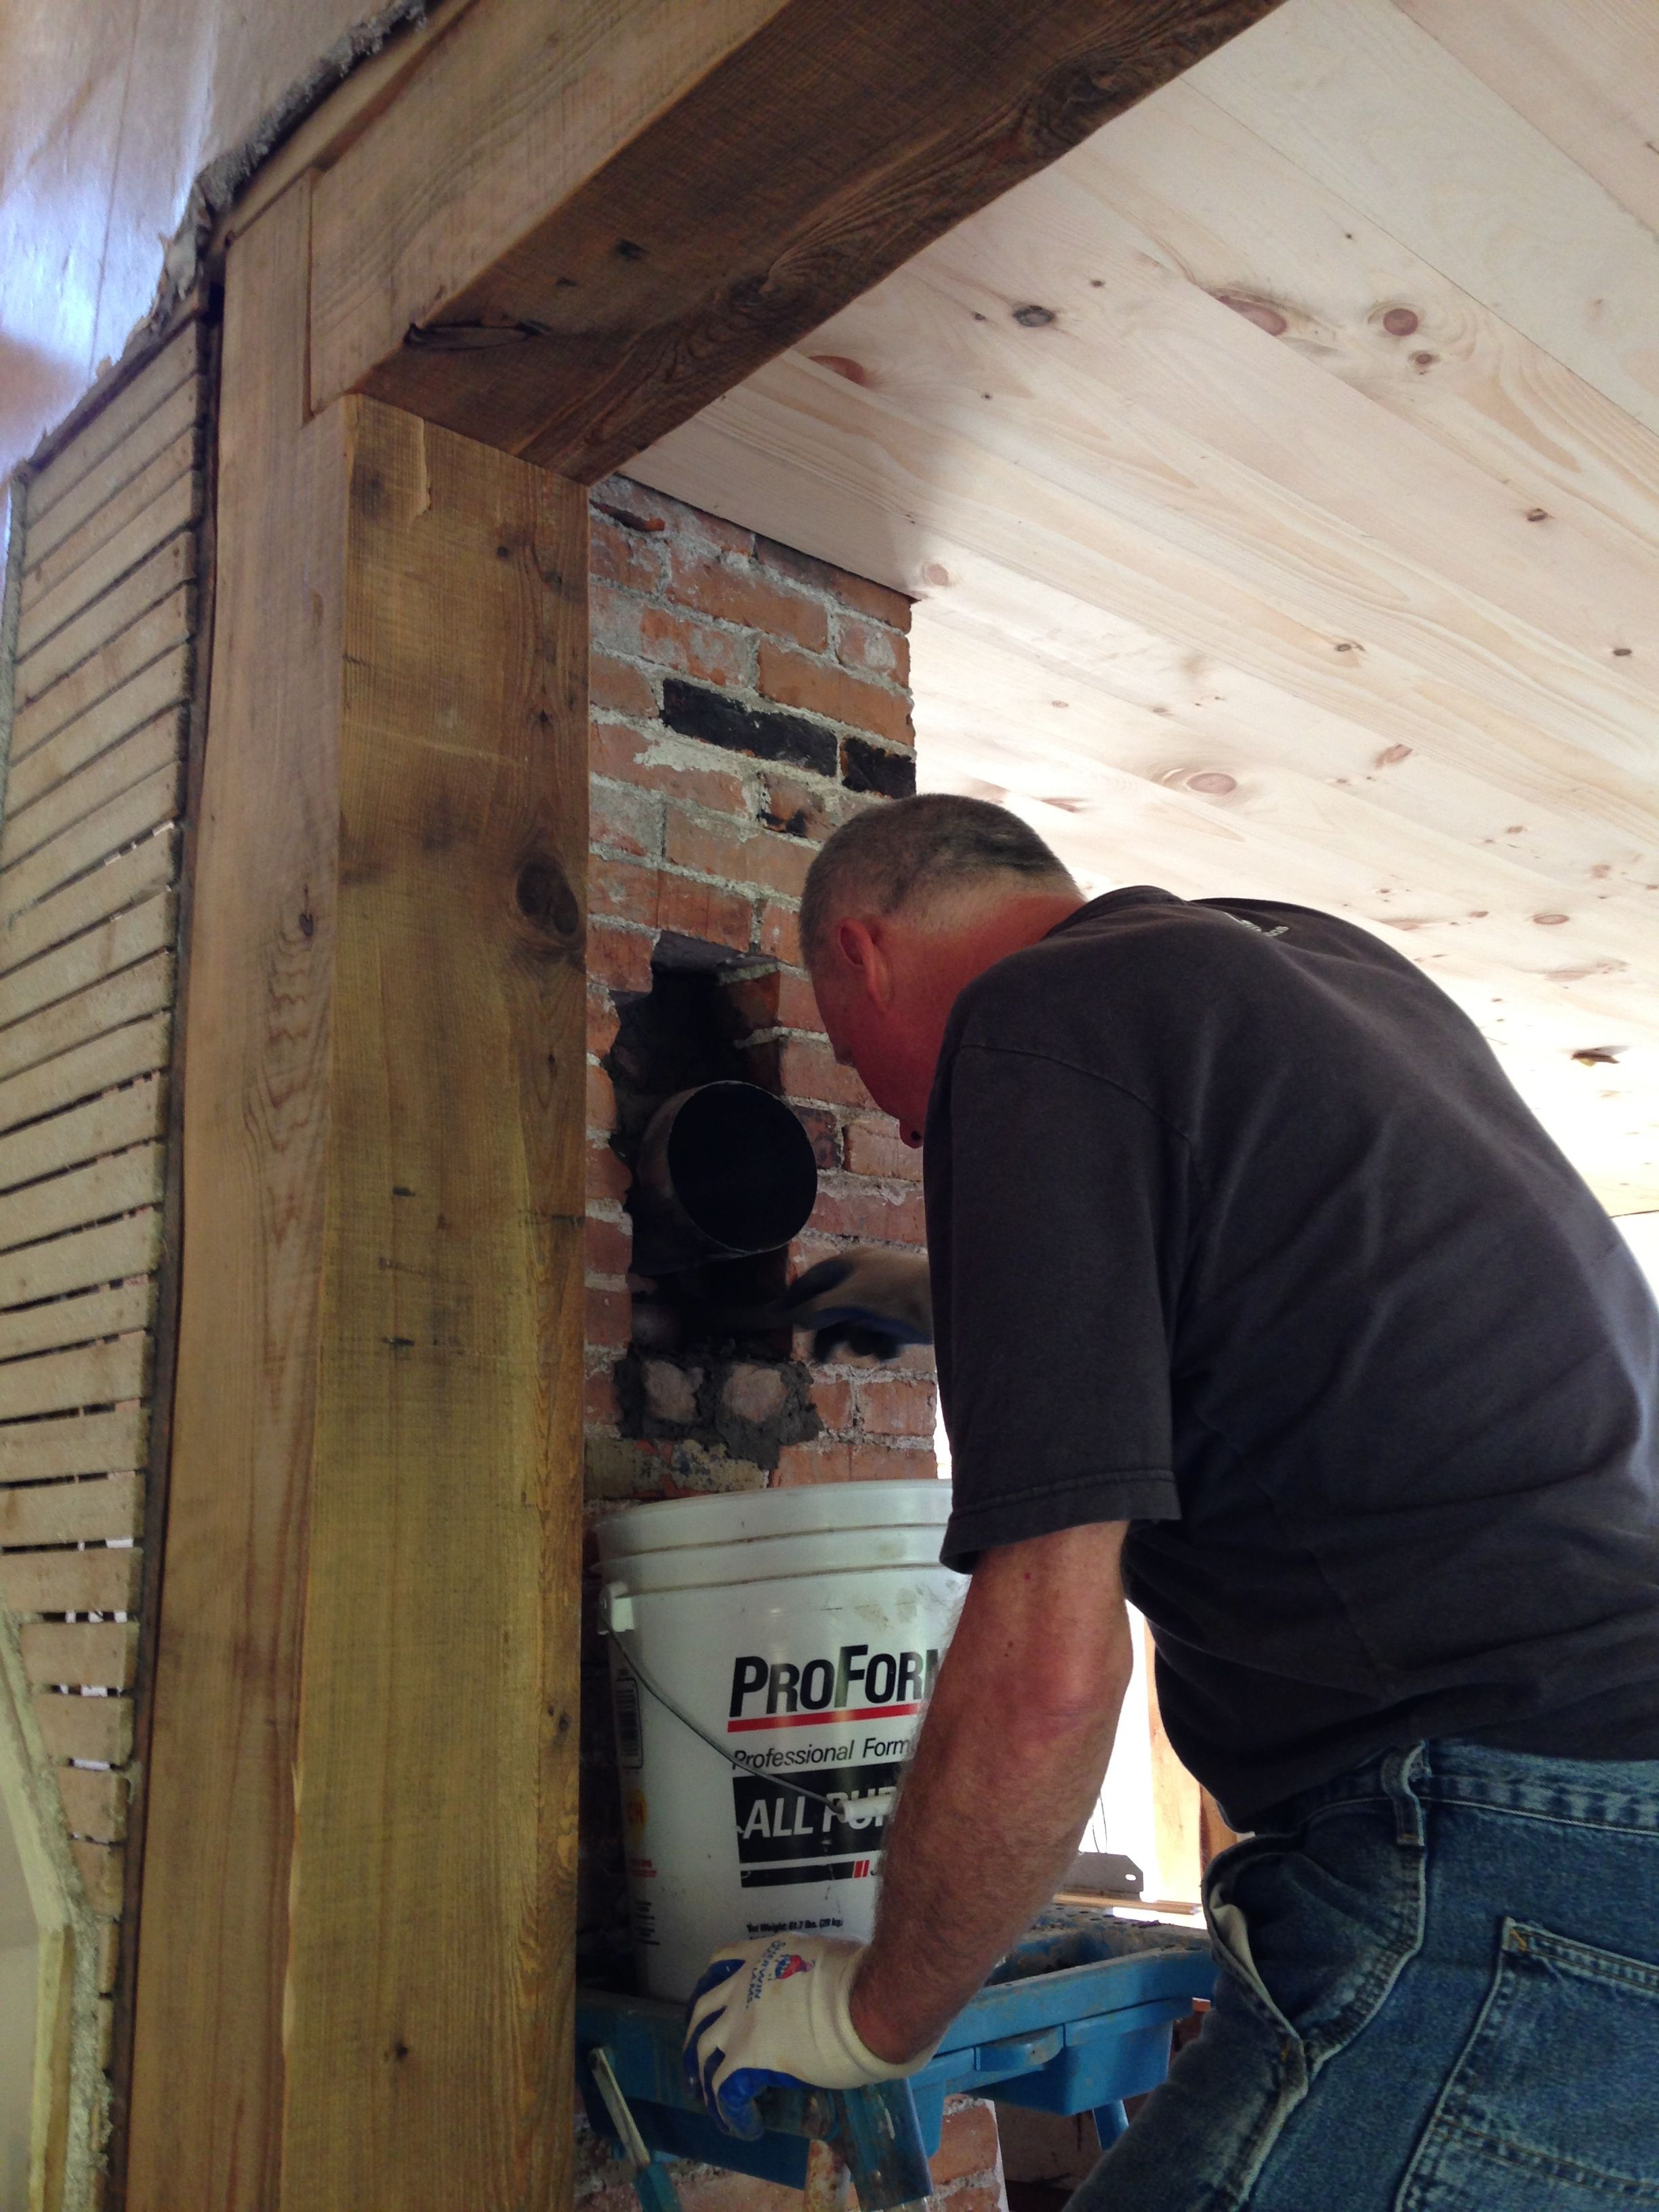 The Husband Fitting, Patching The Kitchen Connection For The Wood Stove.  That Post And